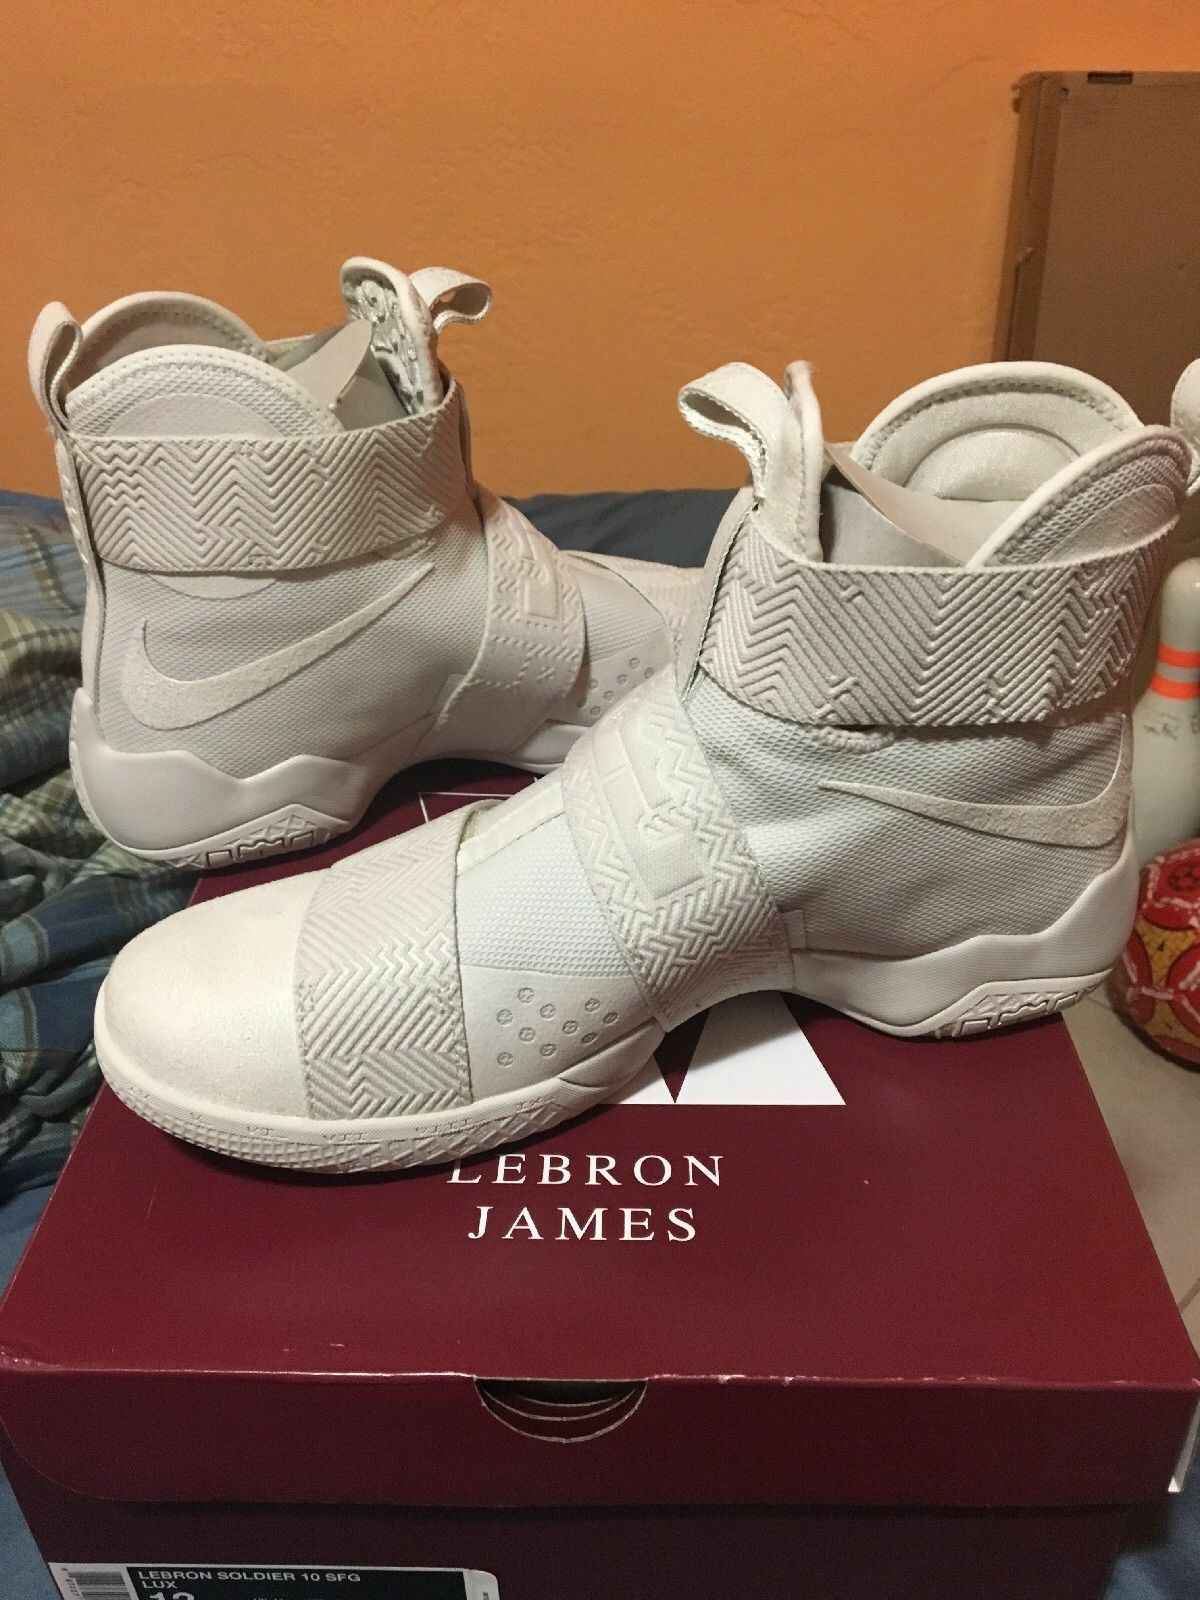 0ec38057996e hot nike mens lebron soldier 10 ohio state 844378 060 11 dm 7022f 49a91   authentic norton secured powered by verisign 16d8e 2b07a